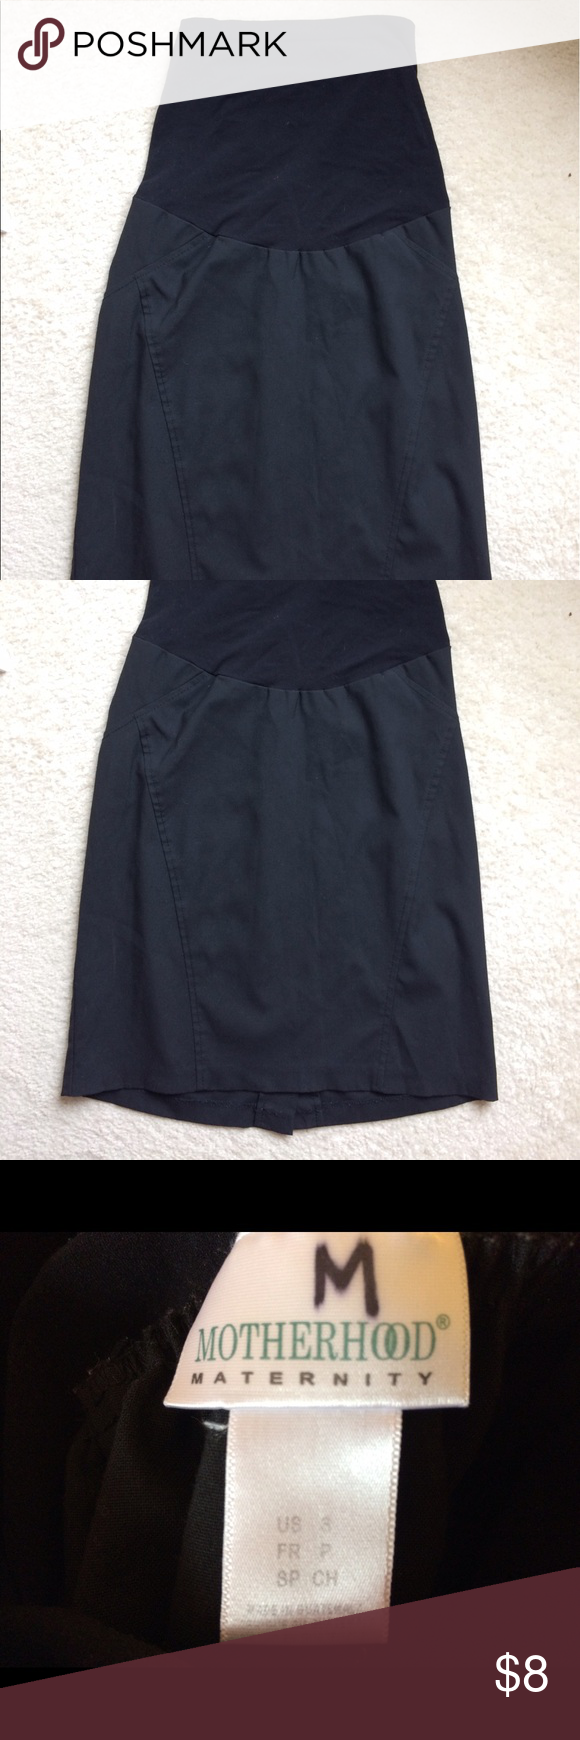 Maternity black skirt Comfy, stretchy full panel maternity skirt. Has small slit in the black. Bundle with other maternity items from my closet and save $ on shipping! Motherhood Maternity Skirts